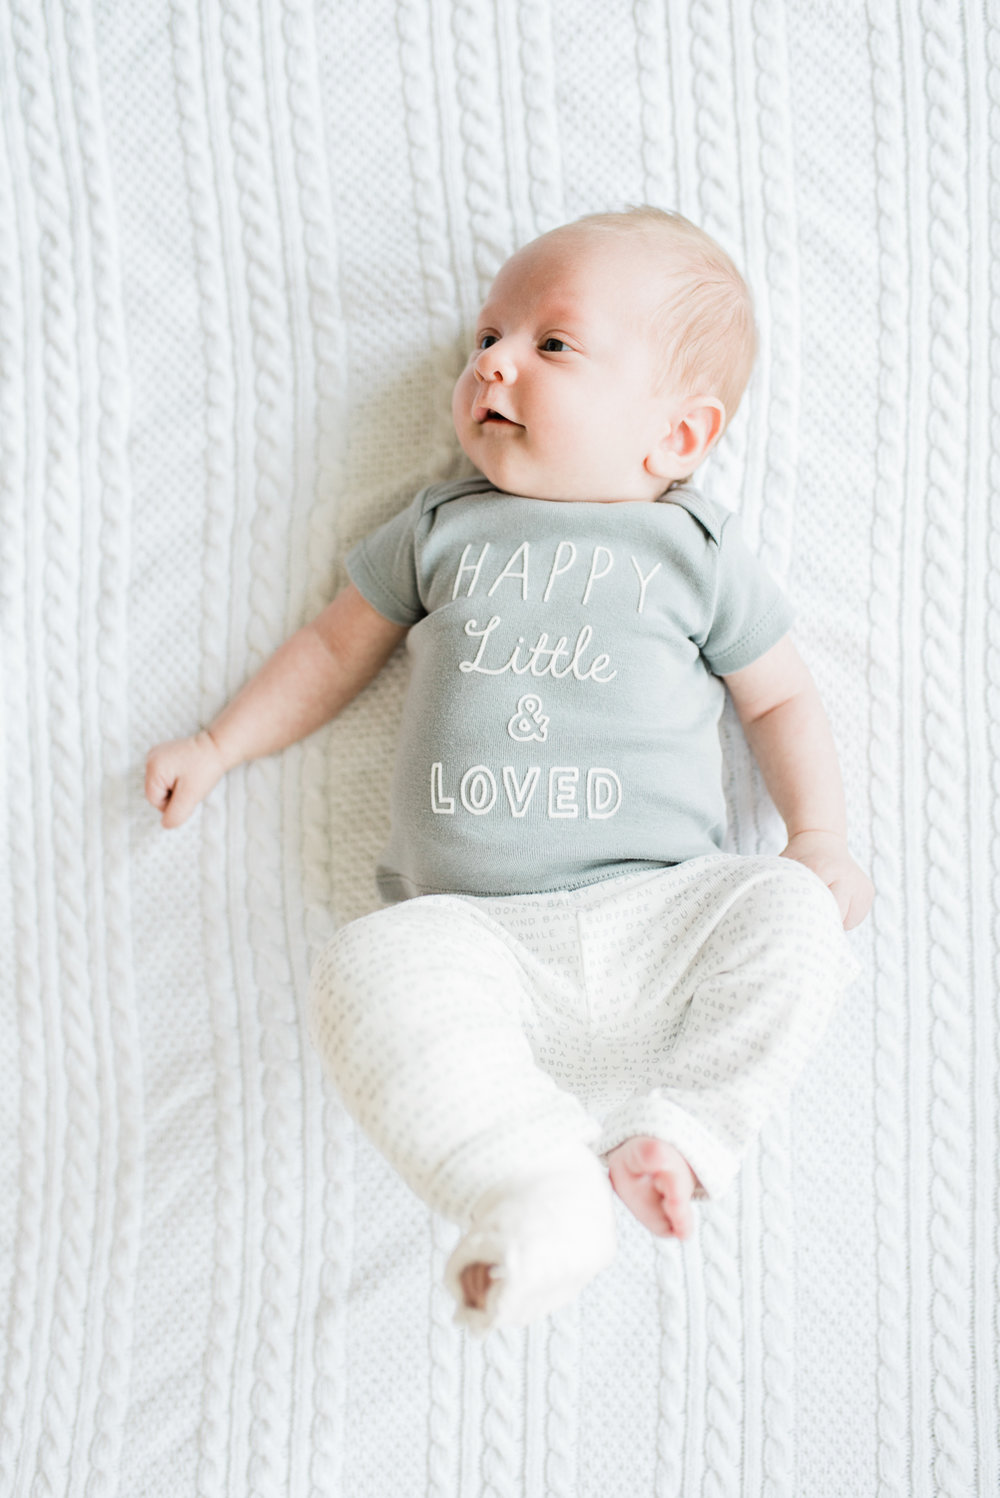 Maryland-Newborn-Lifestyle-photographer-Baltimore-Bel Air-Breanna Kuhlmann.jpg